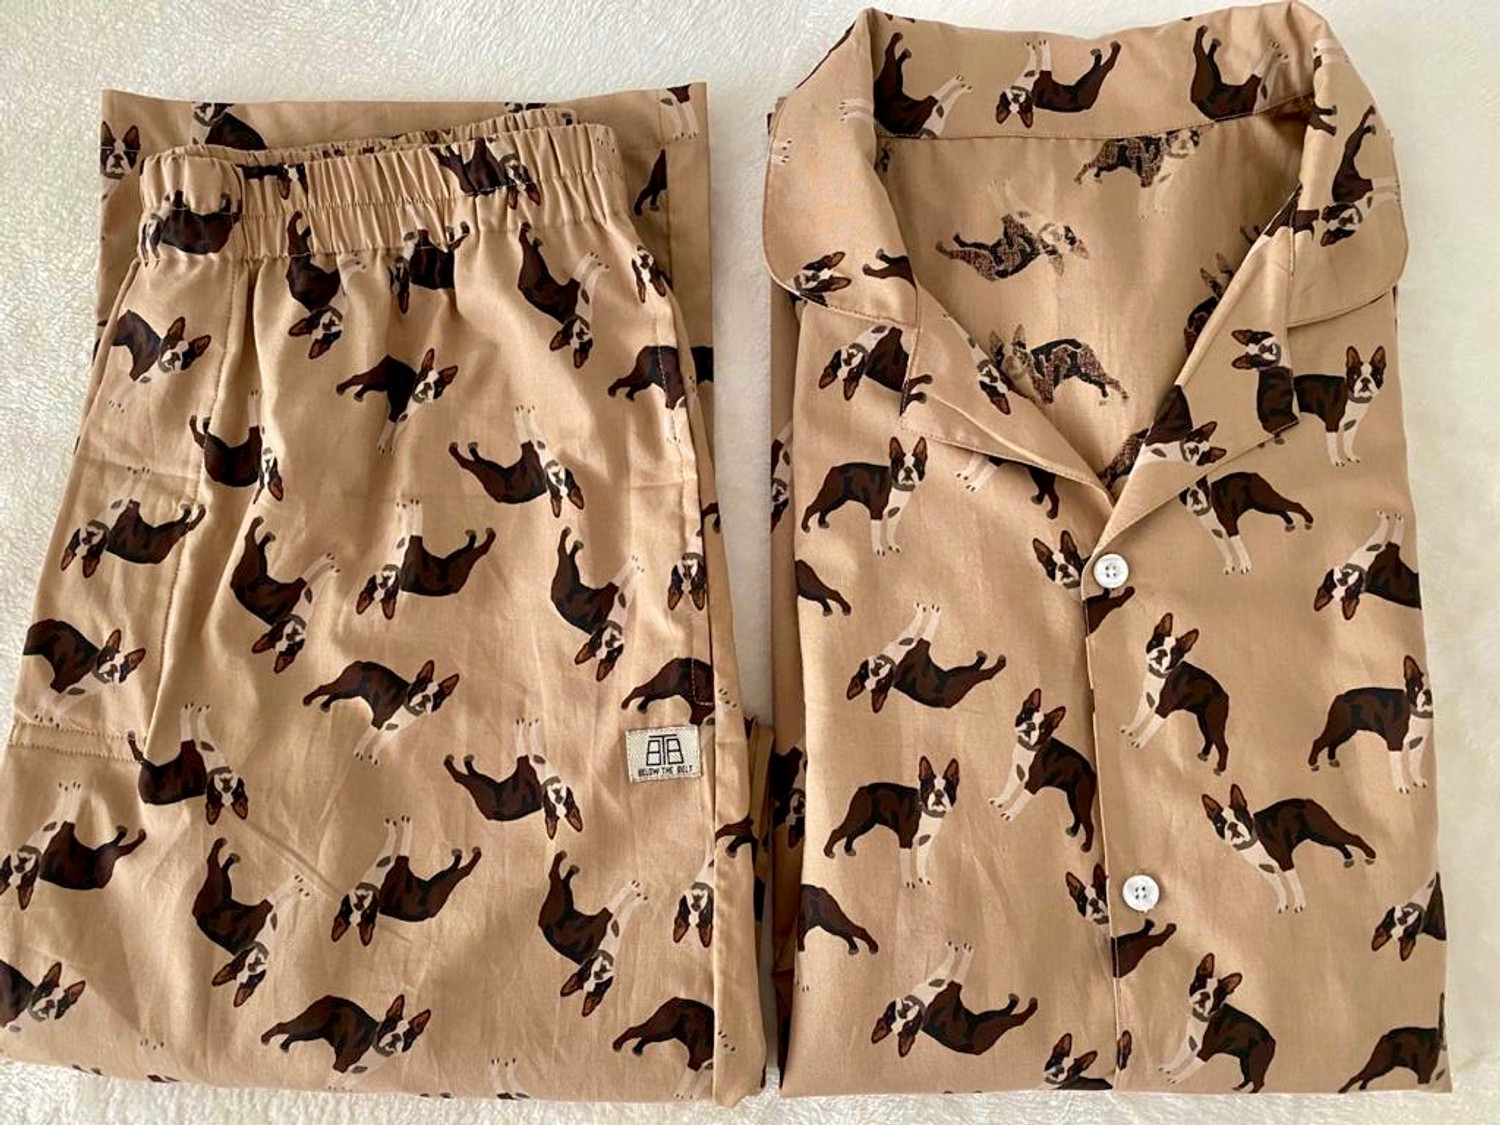 On the WOOF Top Men's Cotton Night Suit